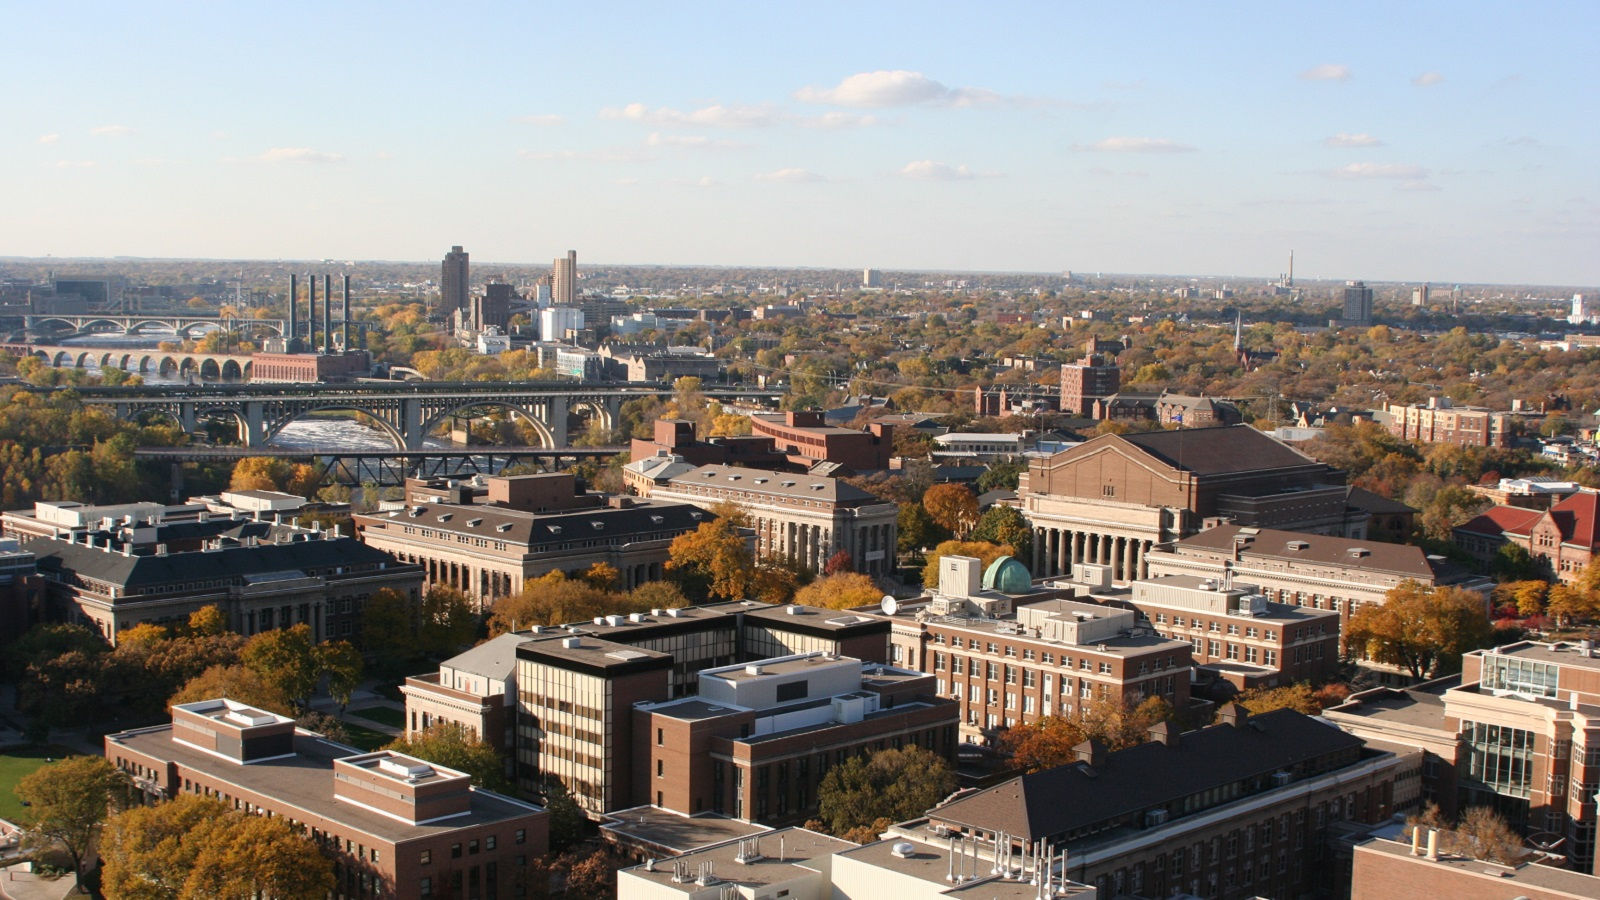 Things to do in Minneapolis includes a college visit to the University of Minnesota.